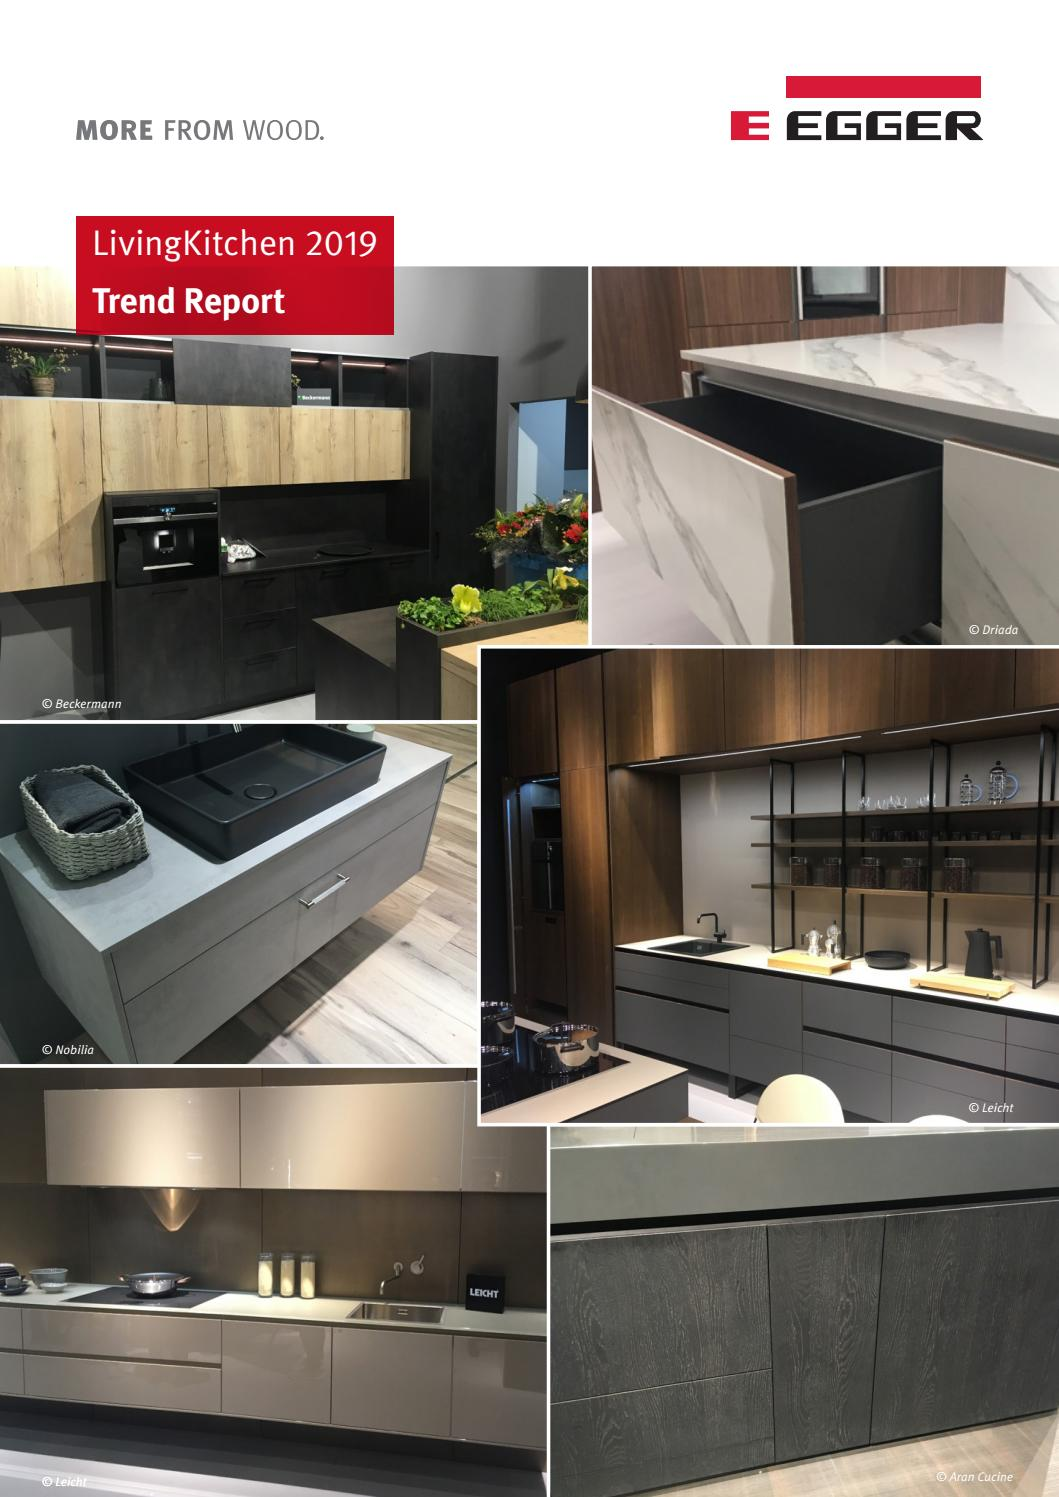 Nobilia Küche Cosmo Trend Report Livingkitchen 2019 By Fritz Egger Gmbh Co Og